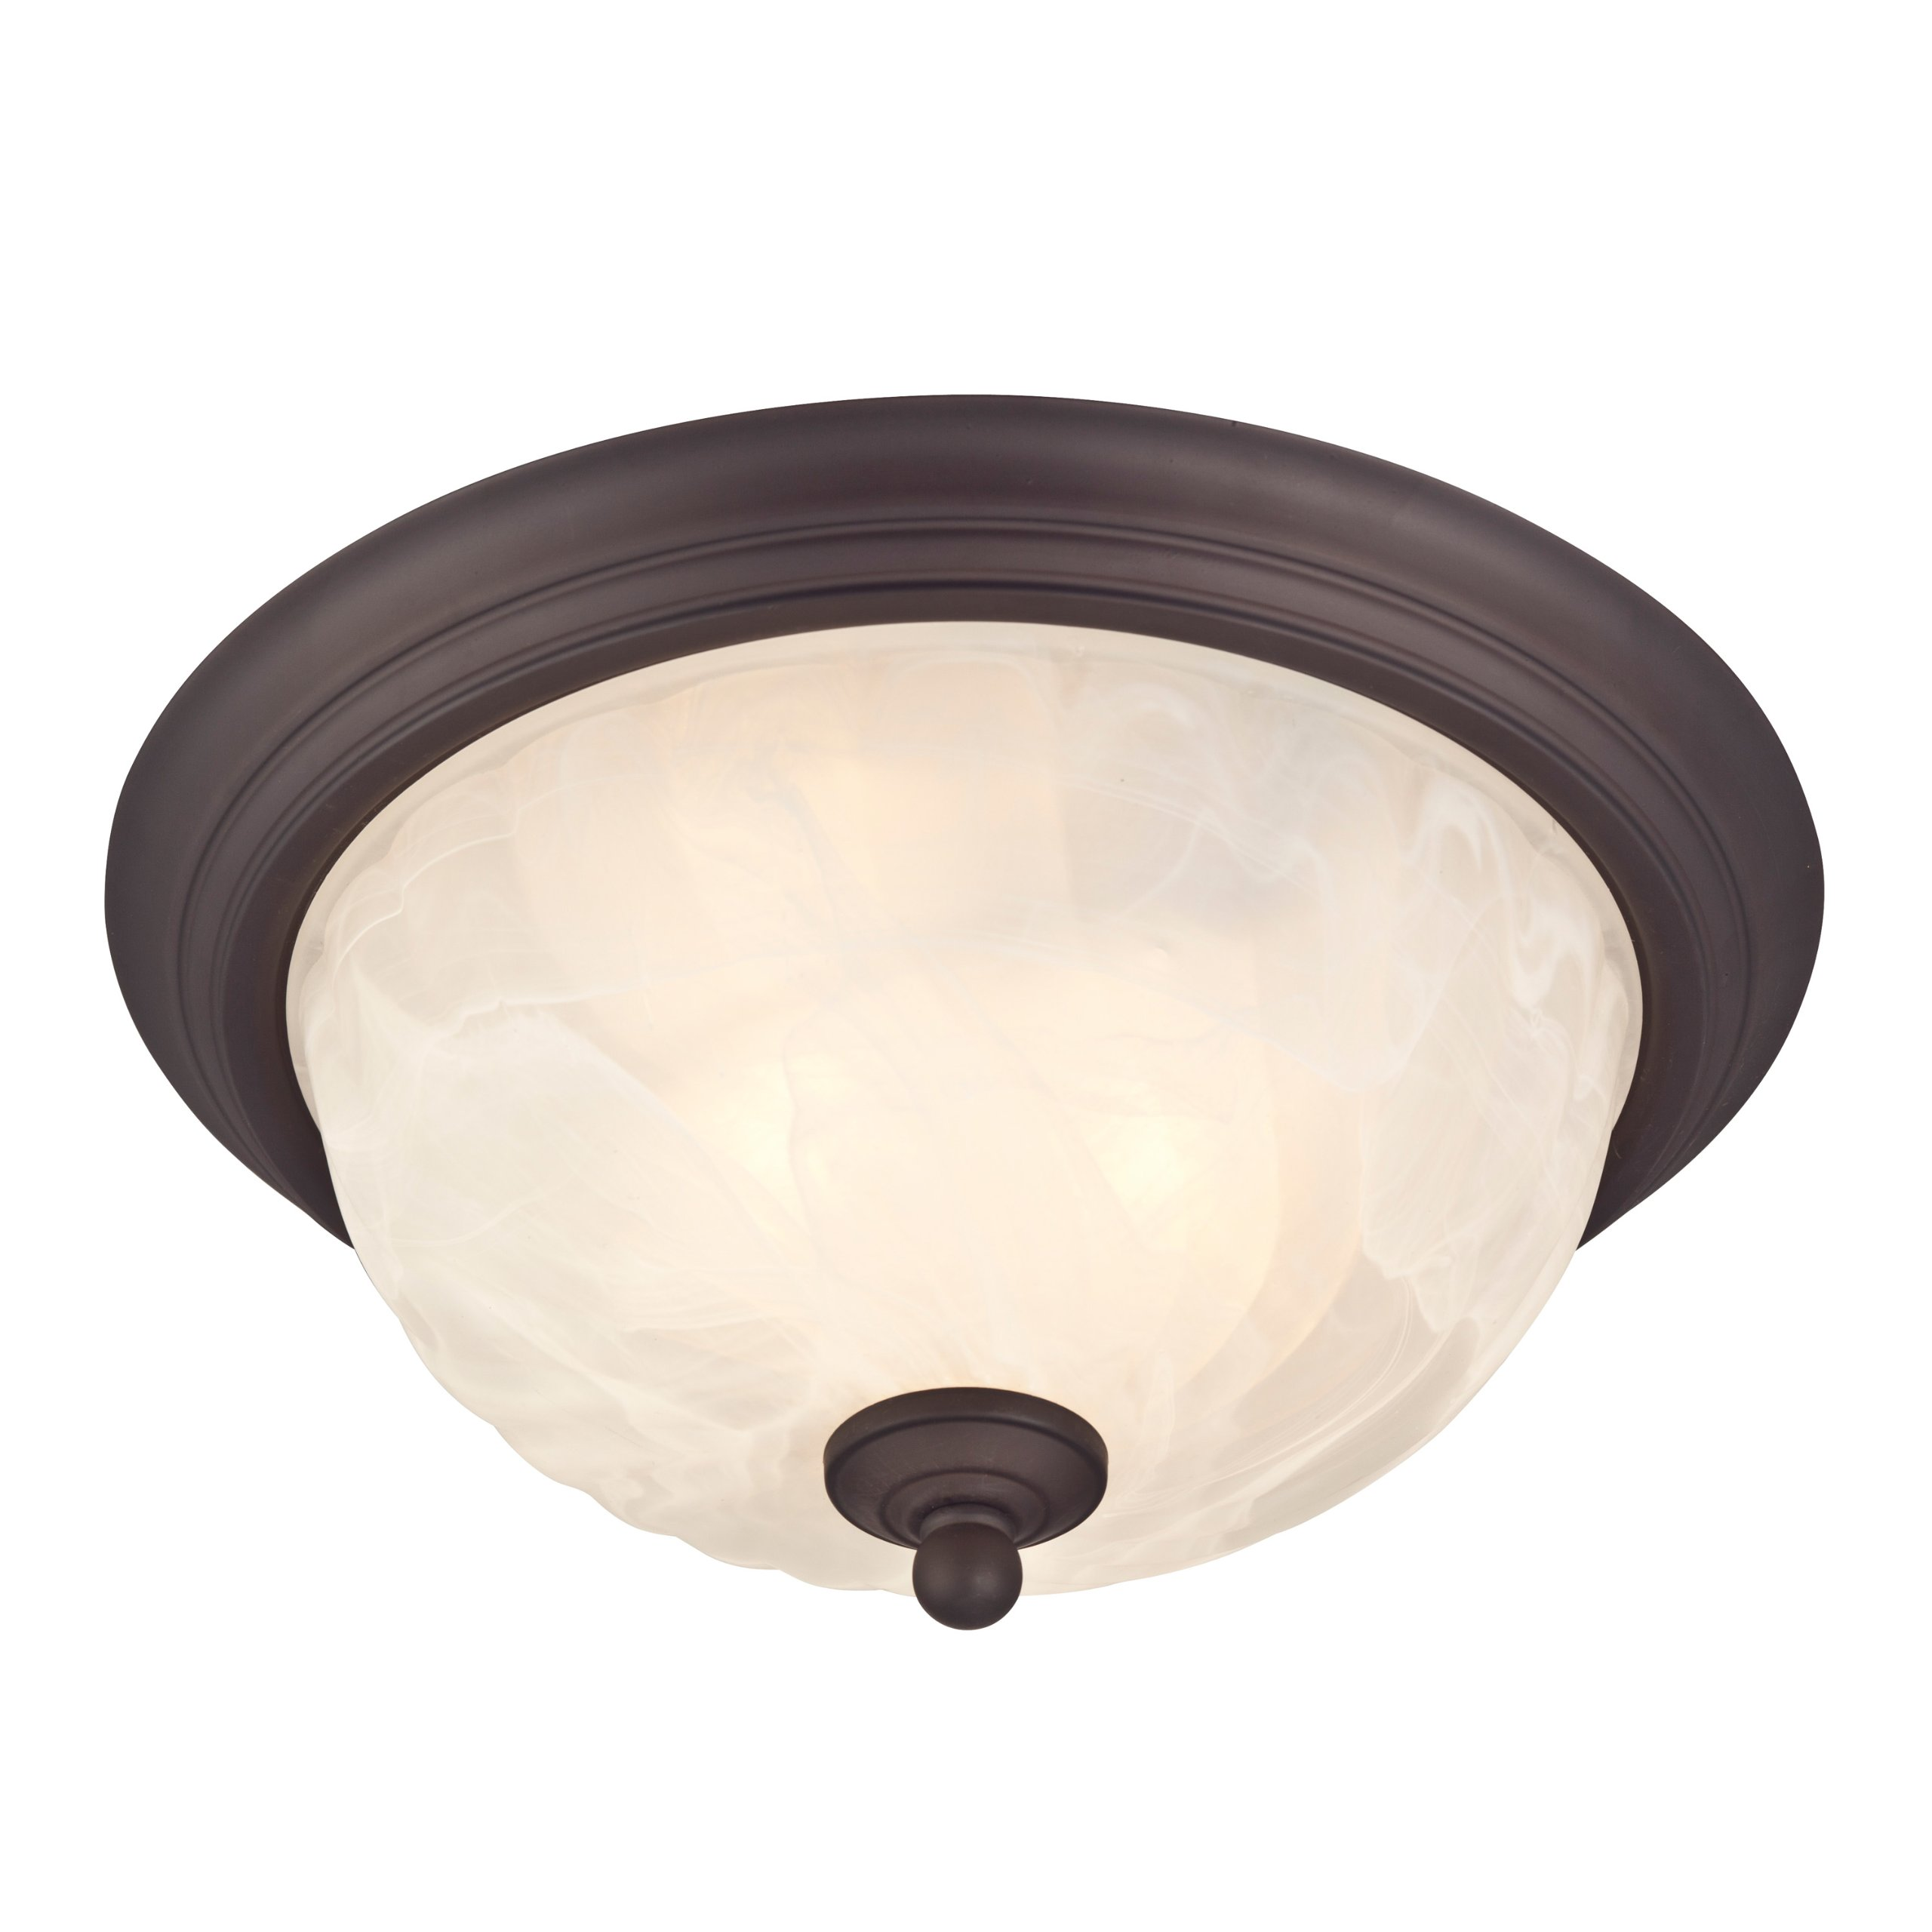 Westinghouse 6230900 Naveen Two-Light Flush-Mount Exterior Fixture, Oil Rubbed Bronze Finish on Steel with White Alabaster Glass